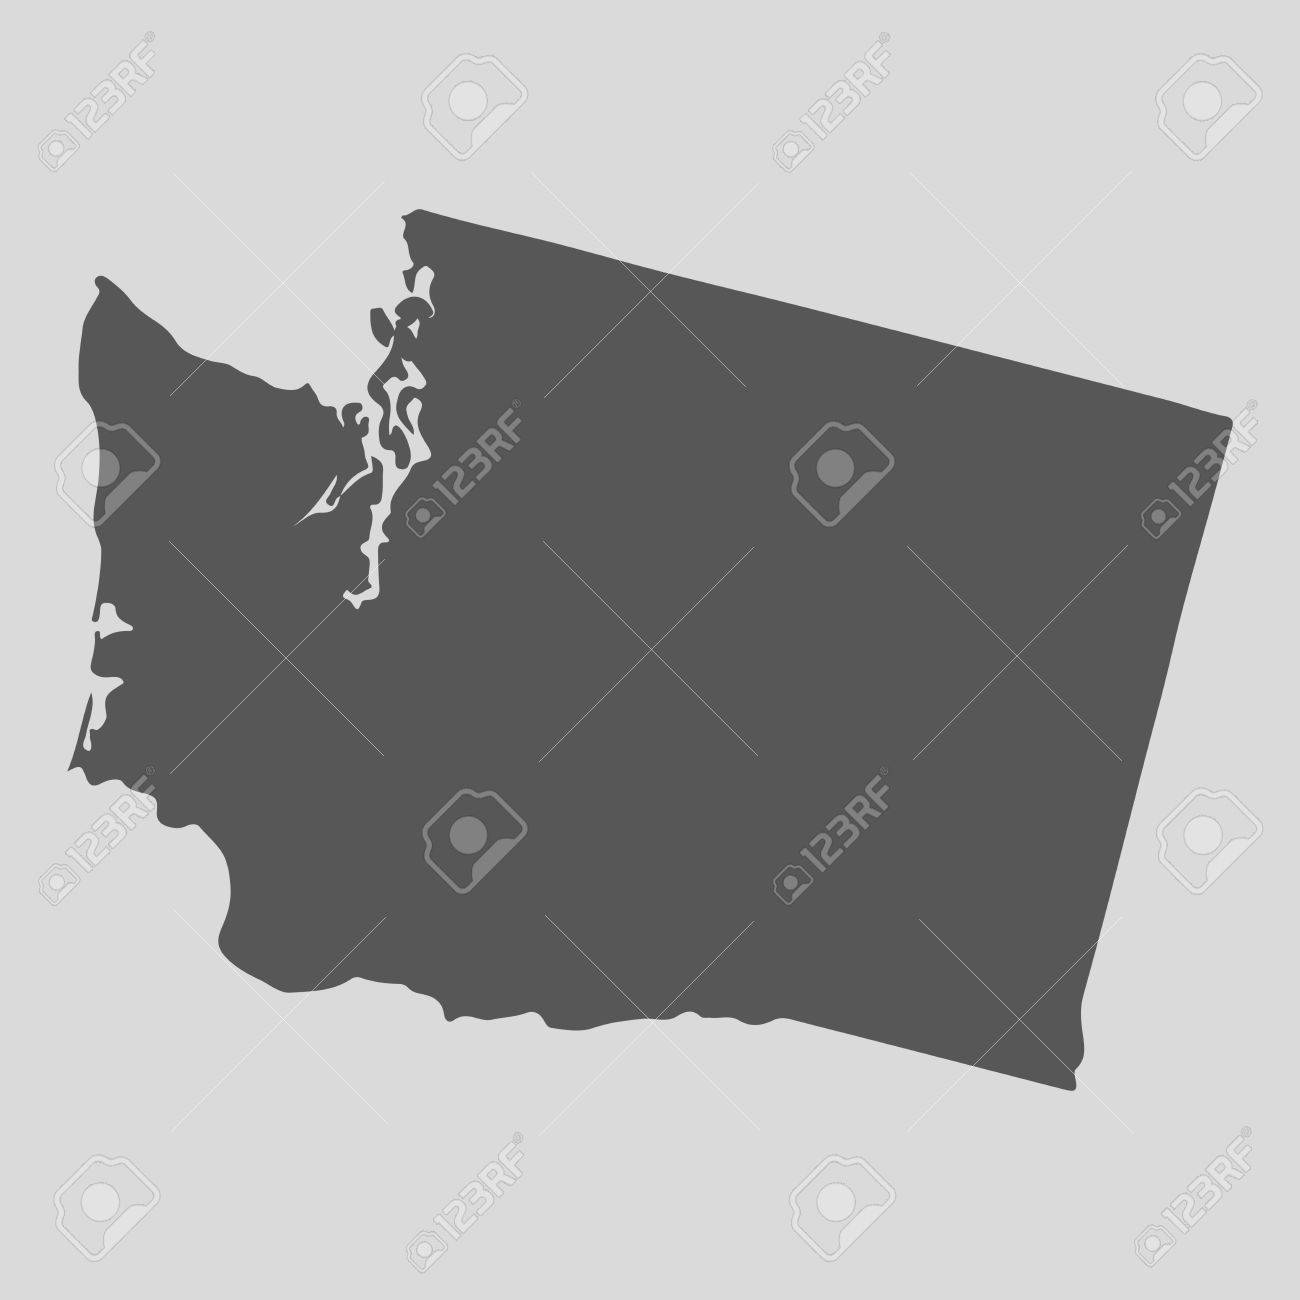 Black Map Of The State Of Washington   Vector Illustration  Simple     Black map of the State of Washington   vector illustration  Simple flat map  State of